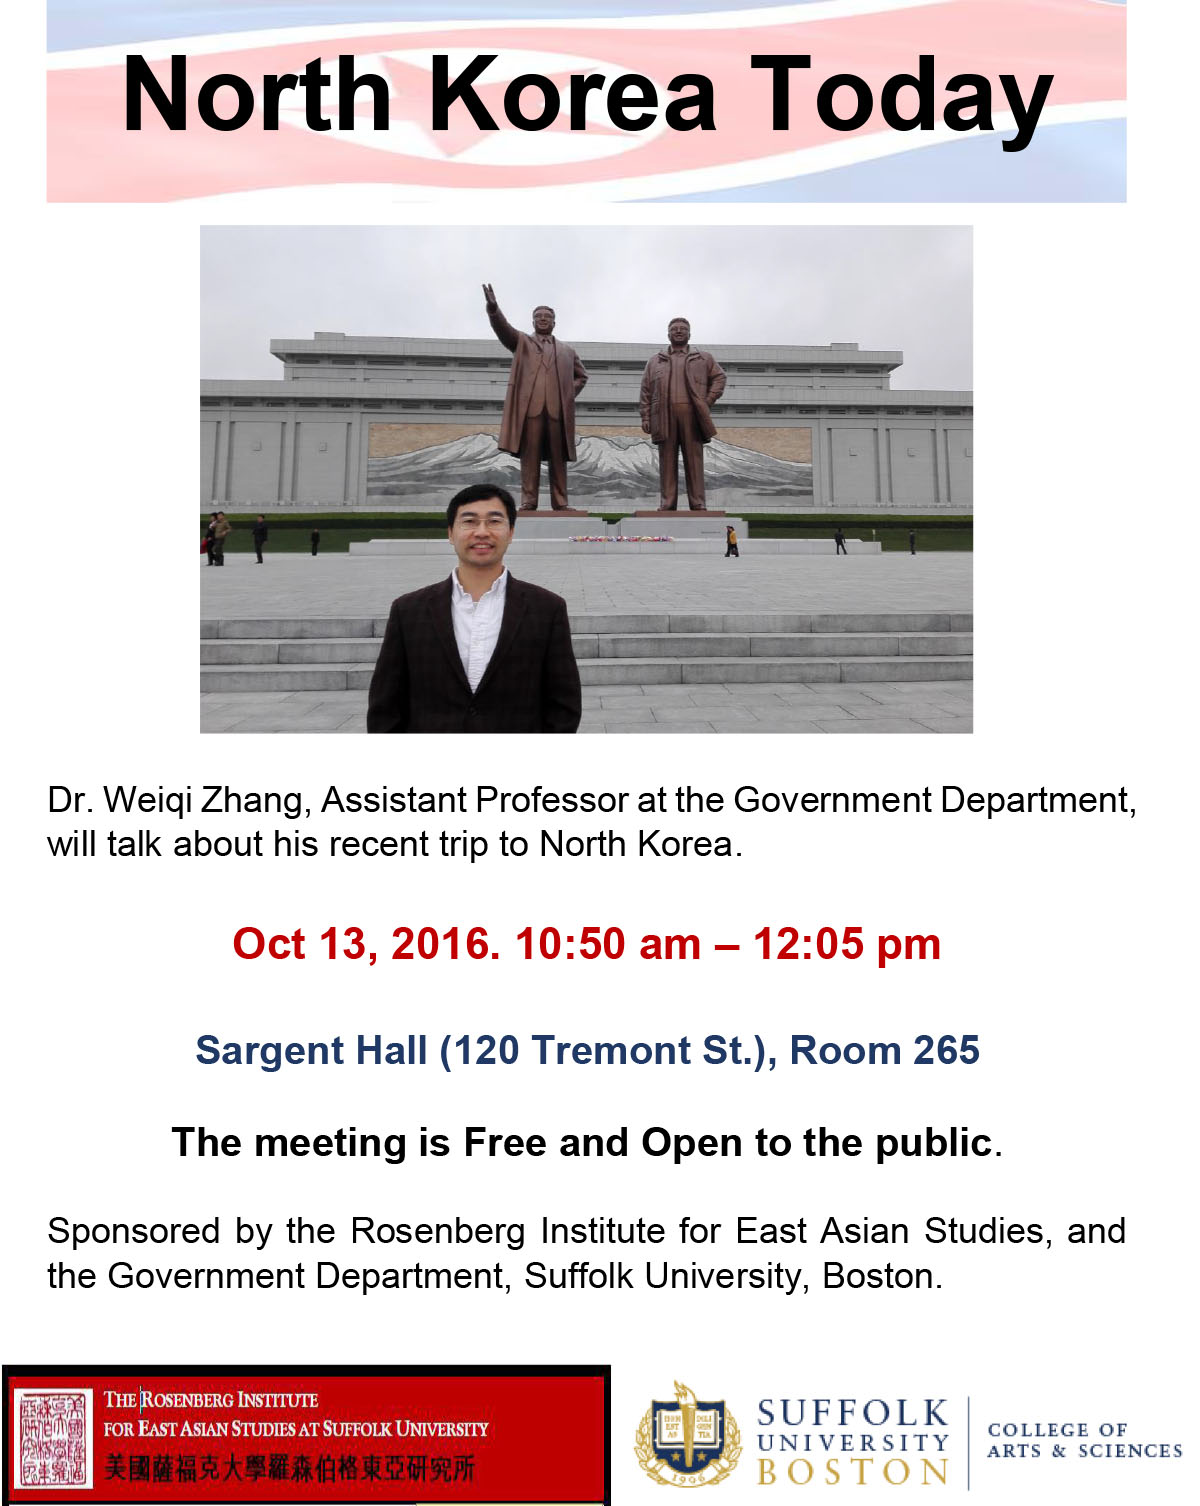 north-korea-today-poster-wqz